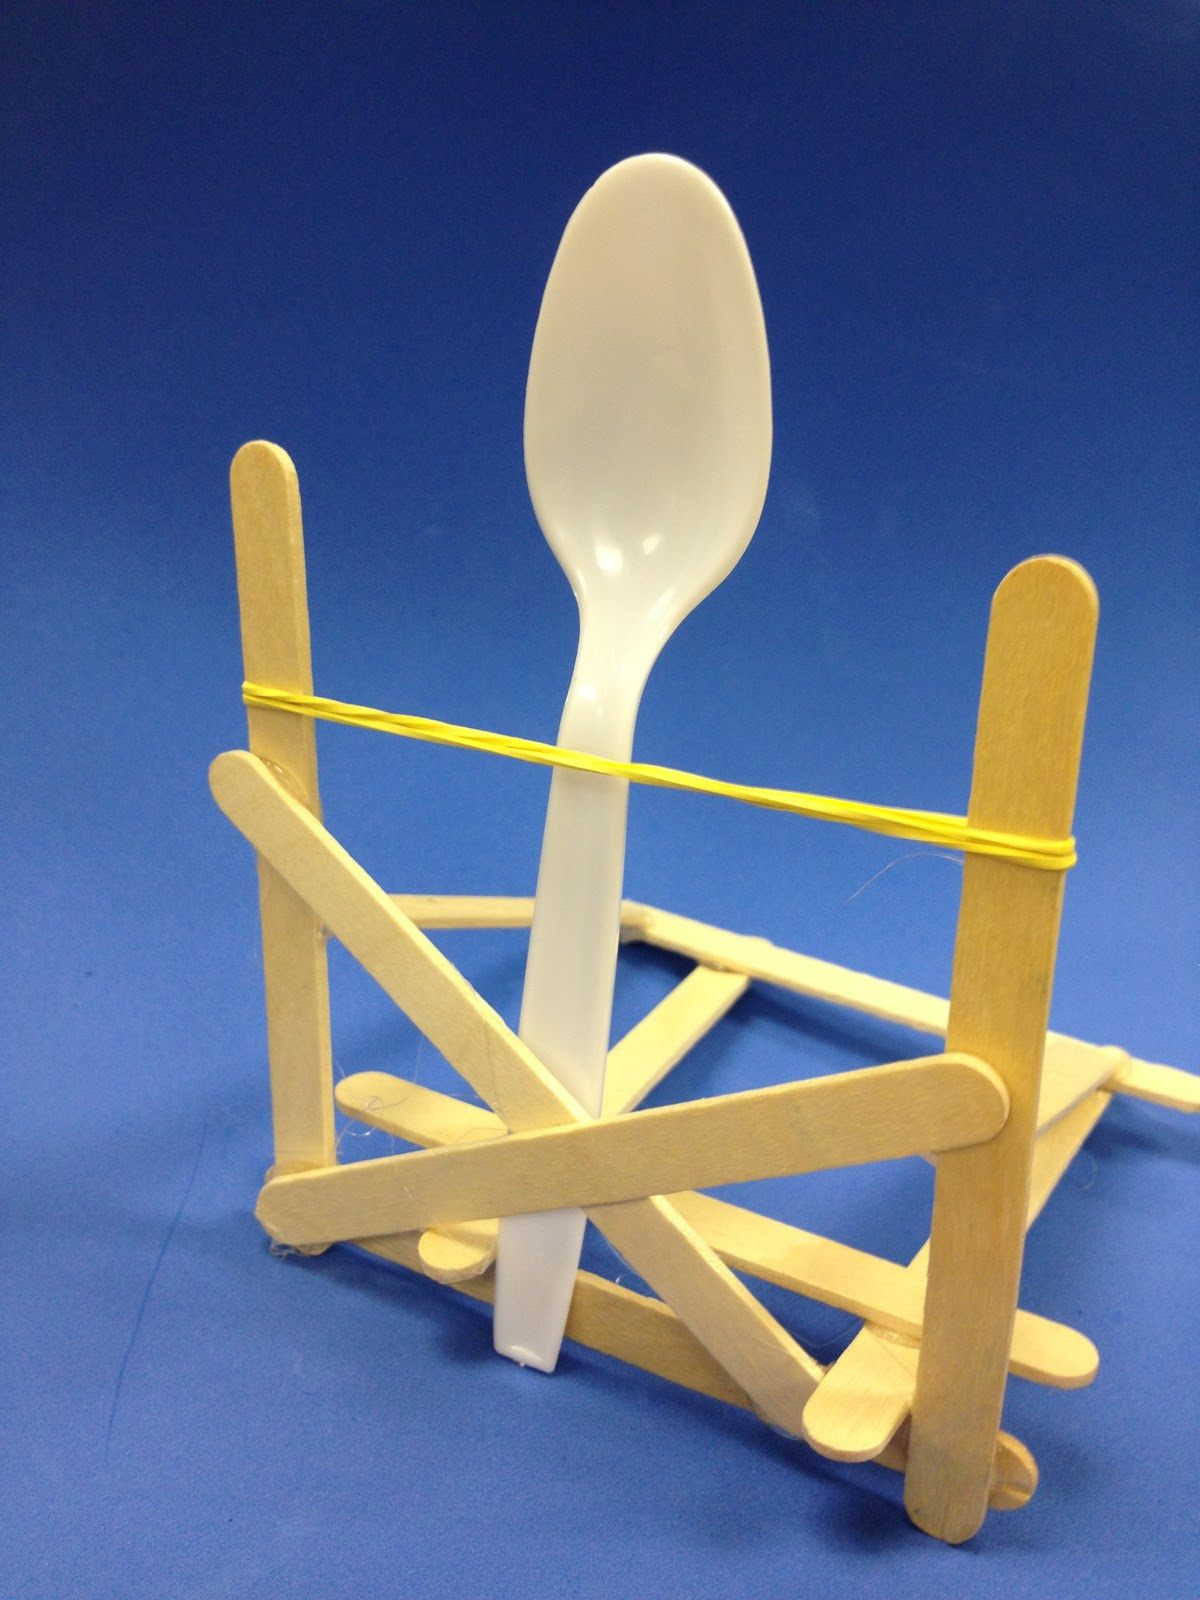 Popsicle Stick Catapult | Teach With Fergy  How To Build A Catapult With Popsicle Sticks